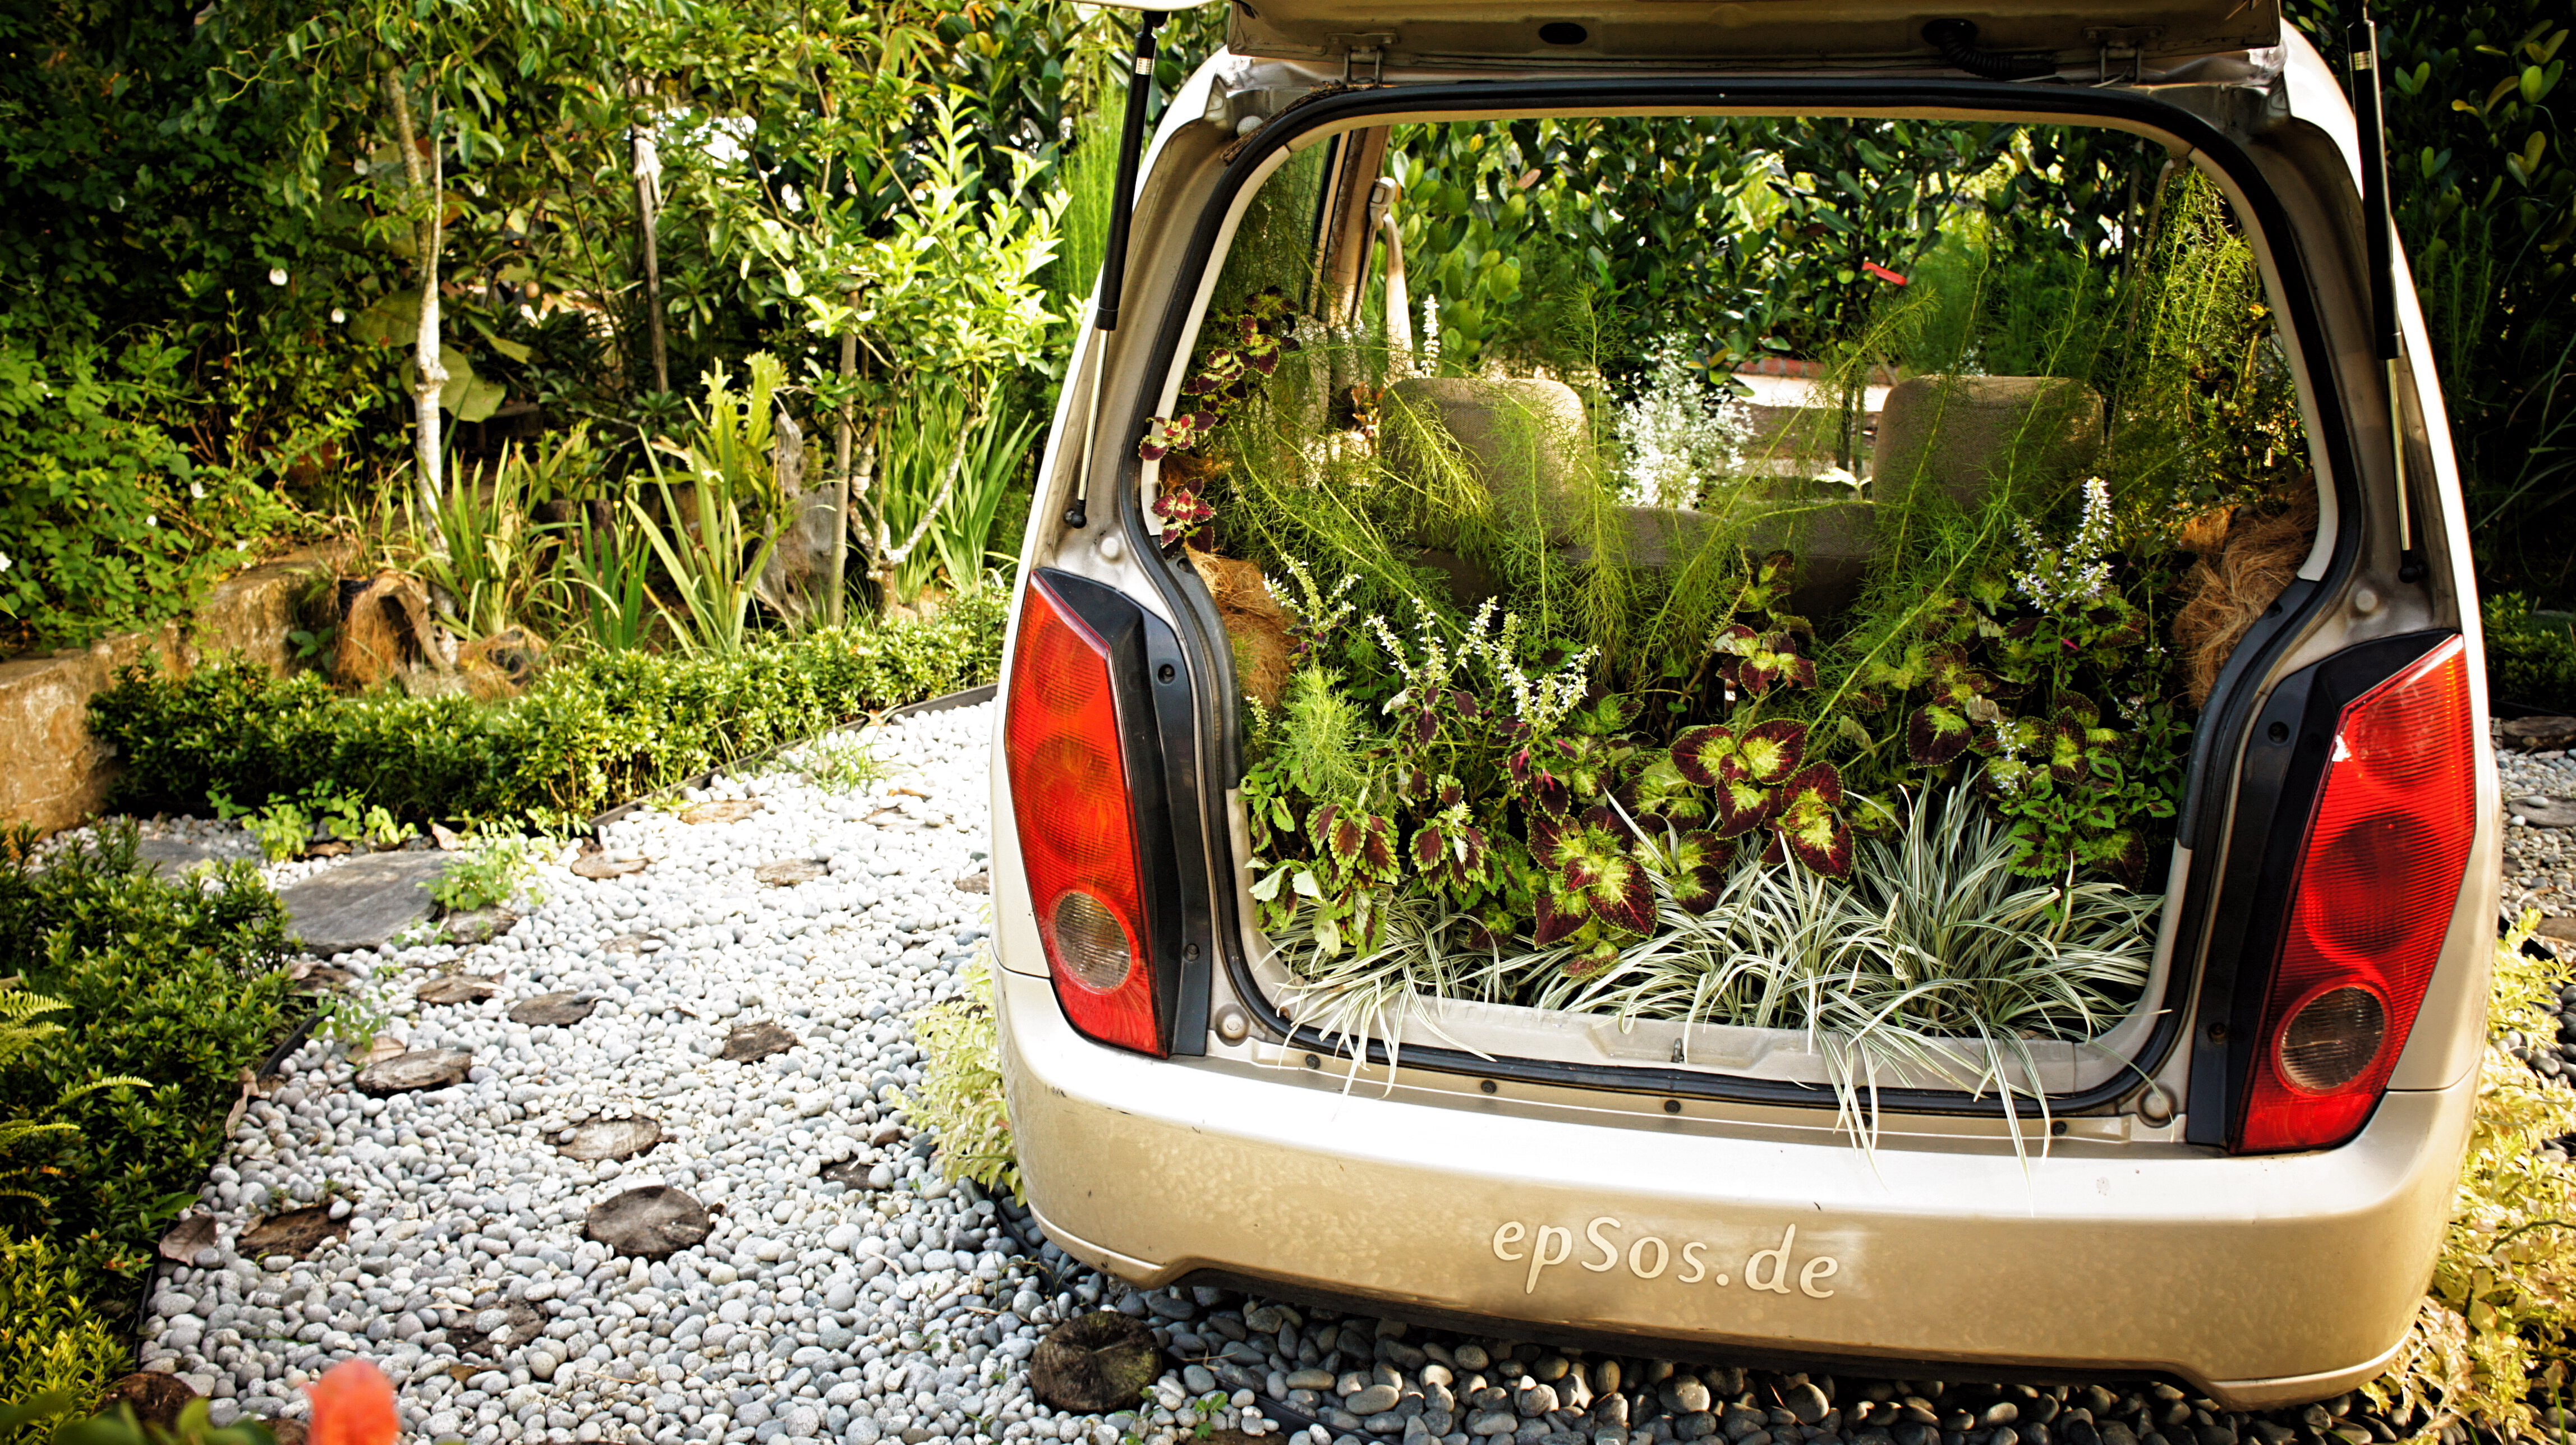 File:Creative Garden Landscape Car